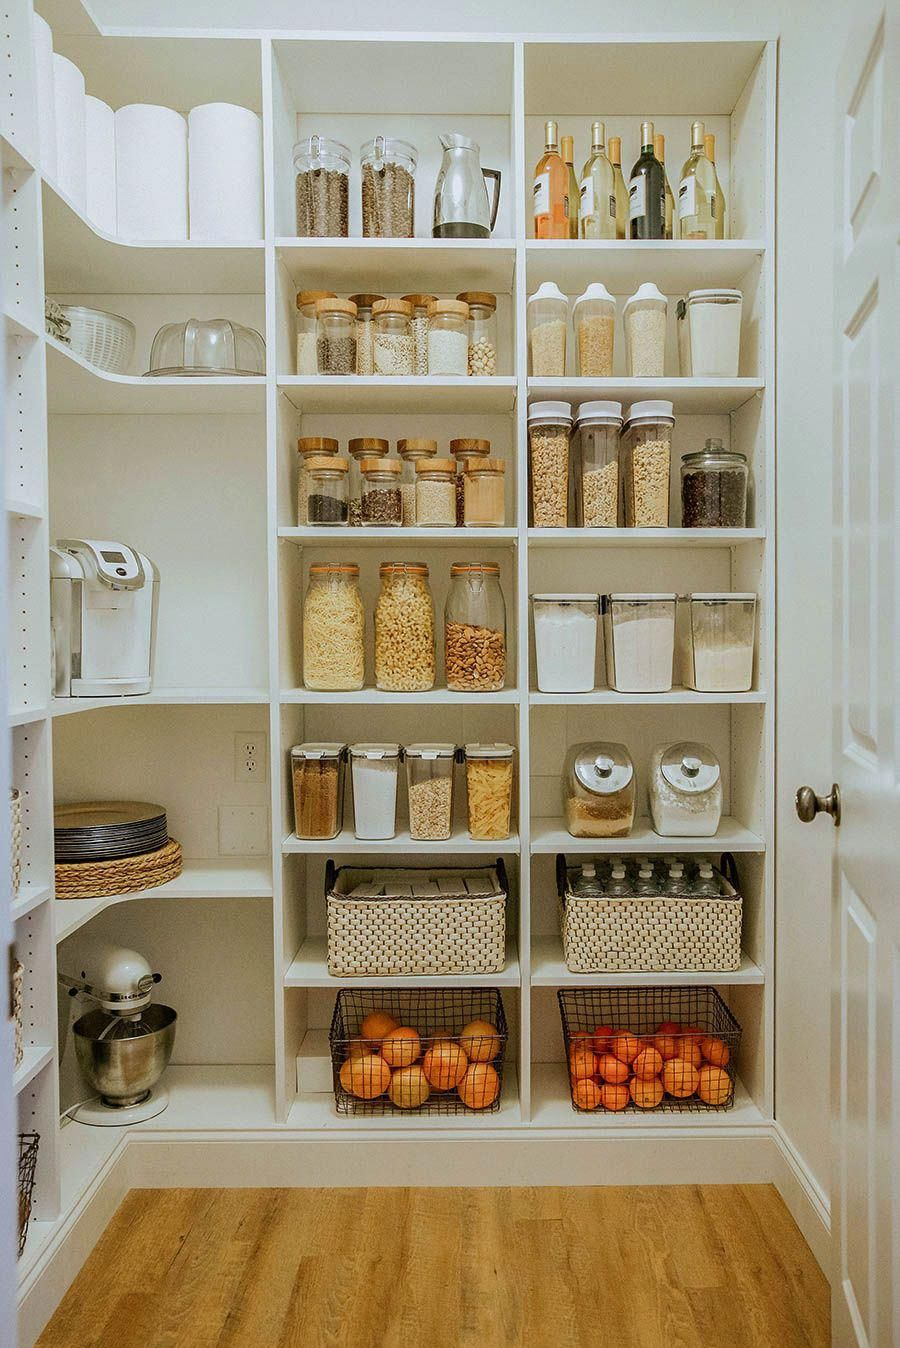 Butler Pantry Ideas Kitchenpantry Pantry Room Pantry Plans Kitchen Organization Pantry